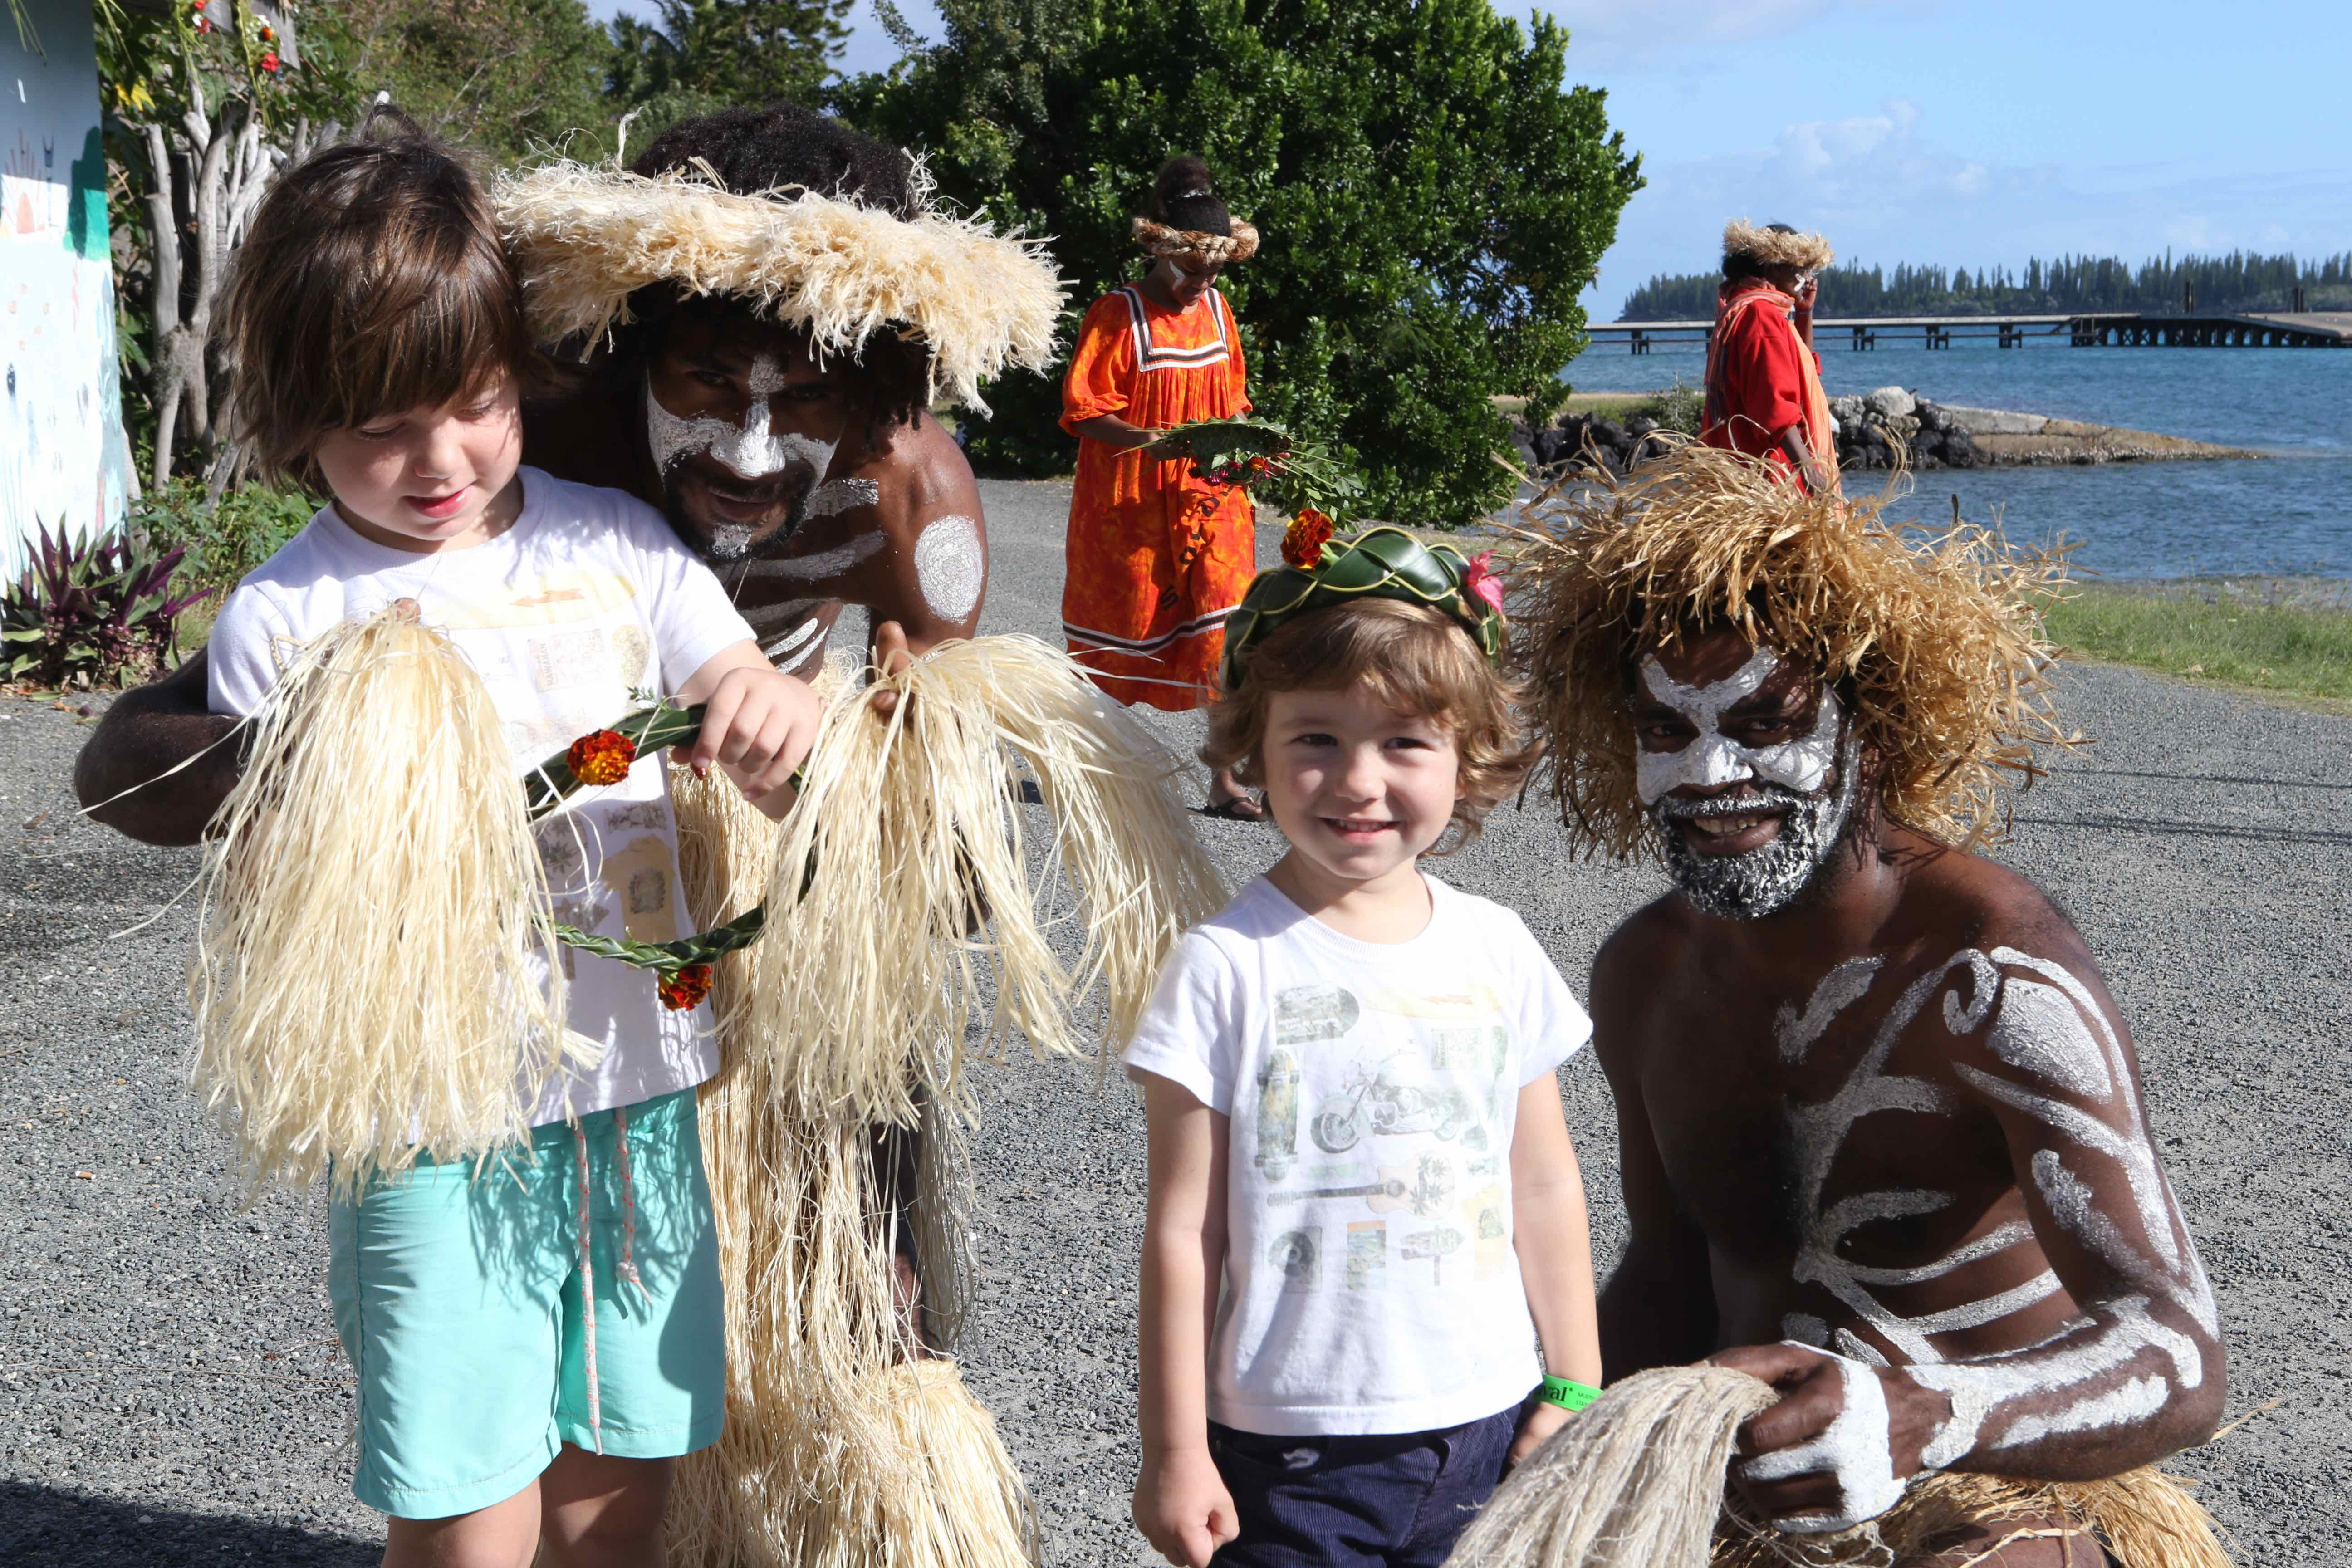 isle-of-pines-discover-tour-new-caledonia-travelling-with-kids-3